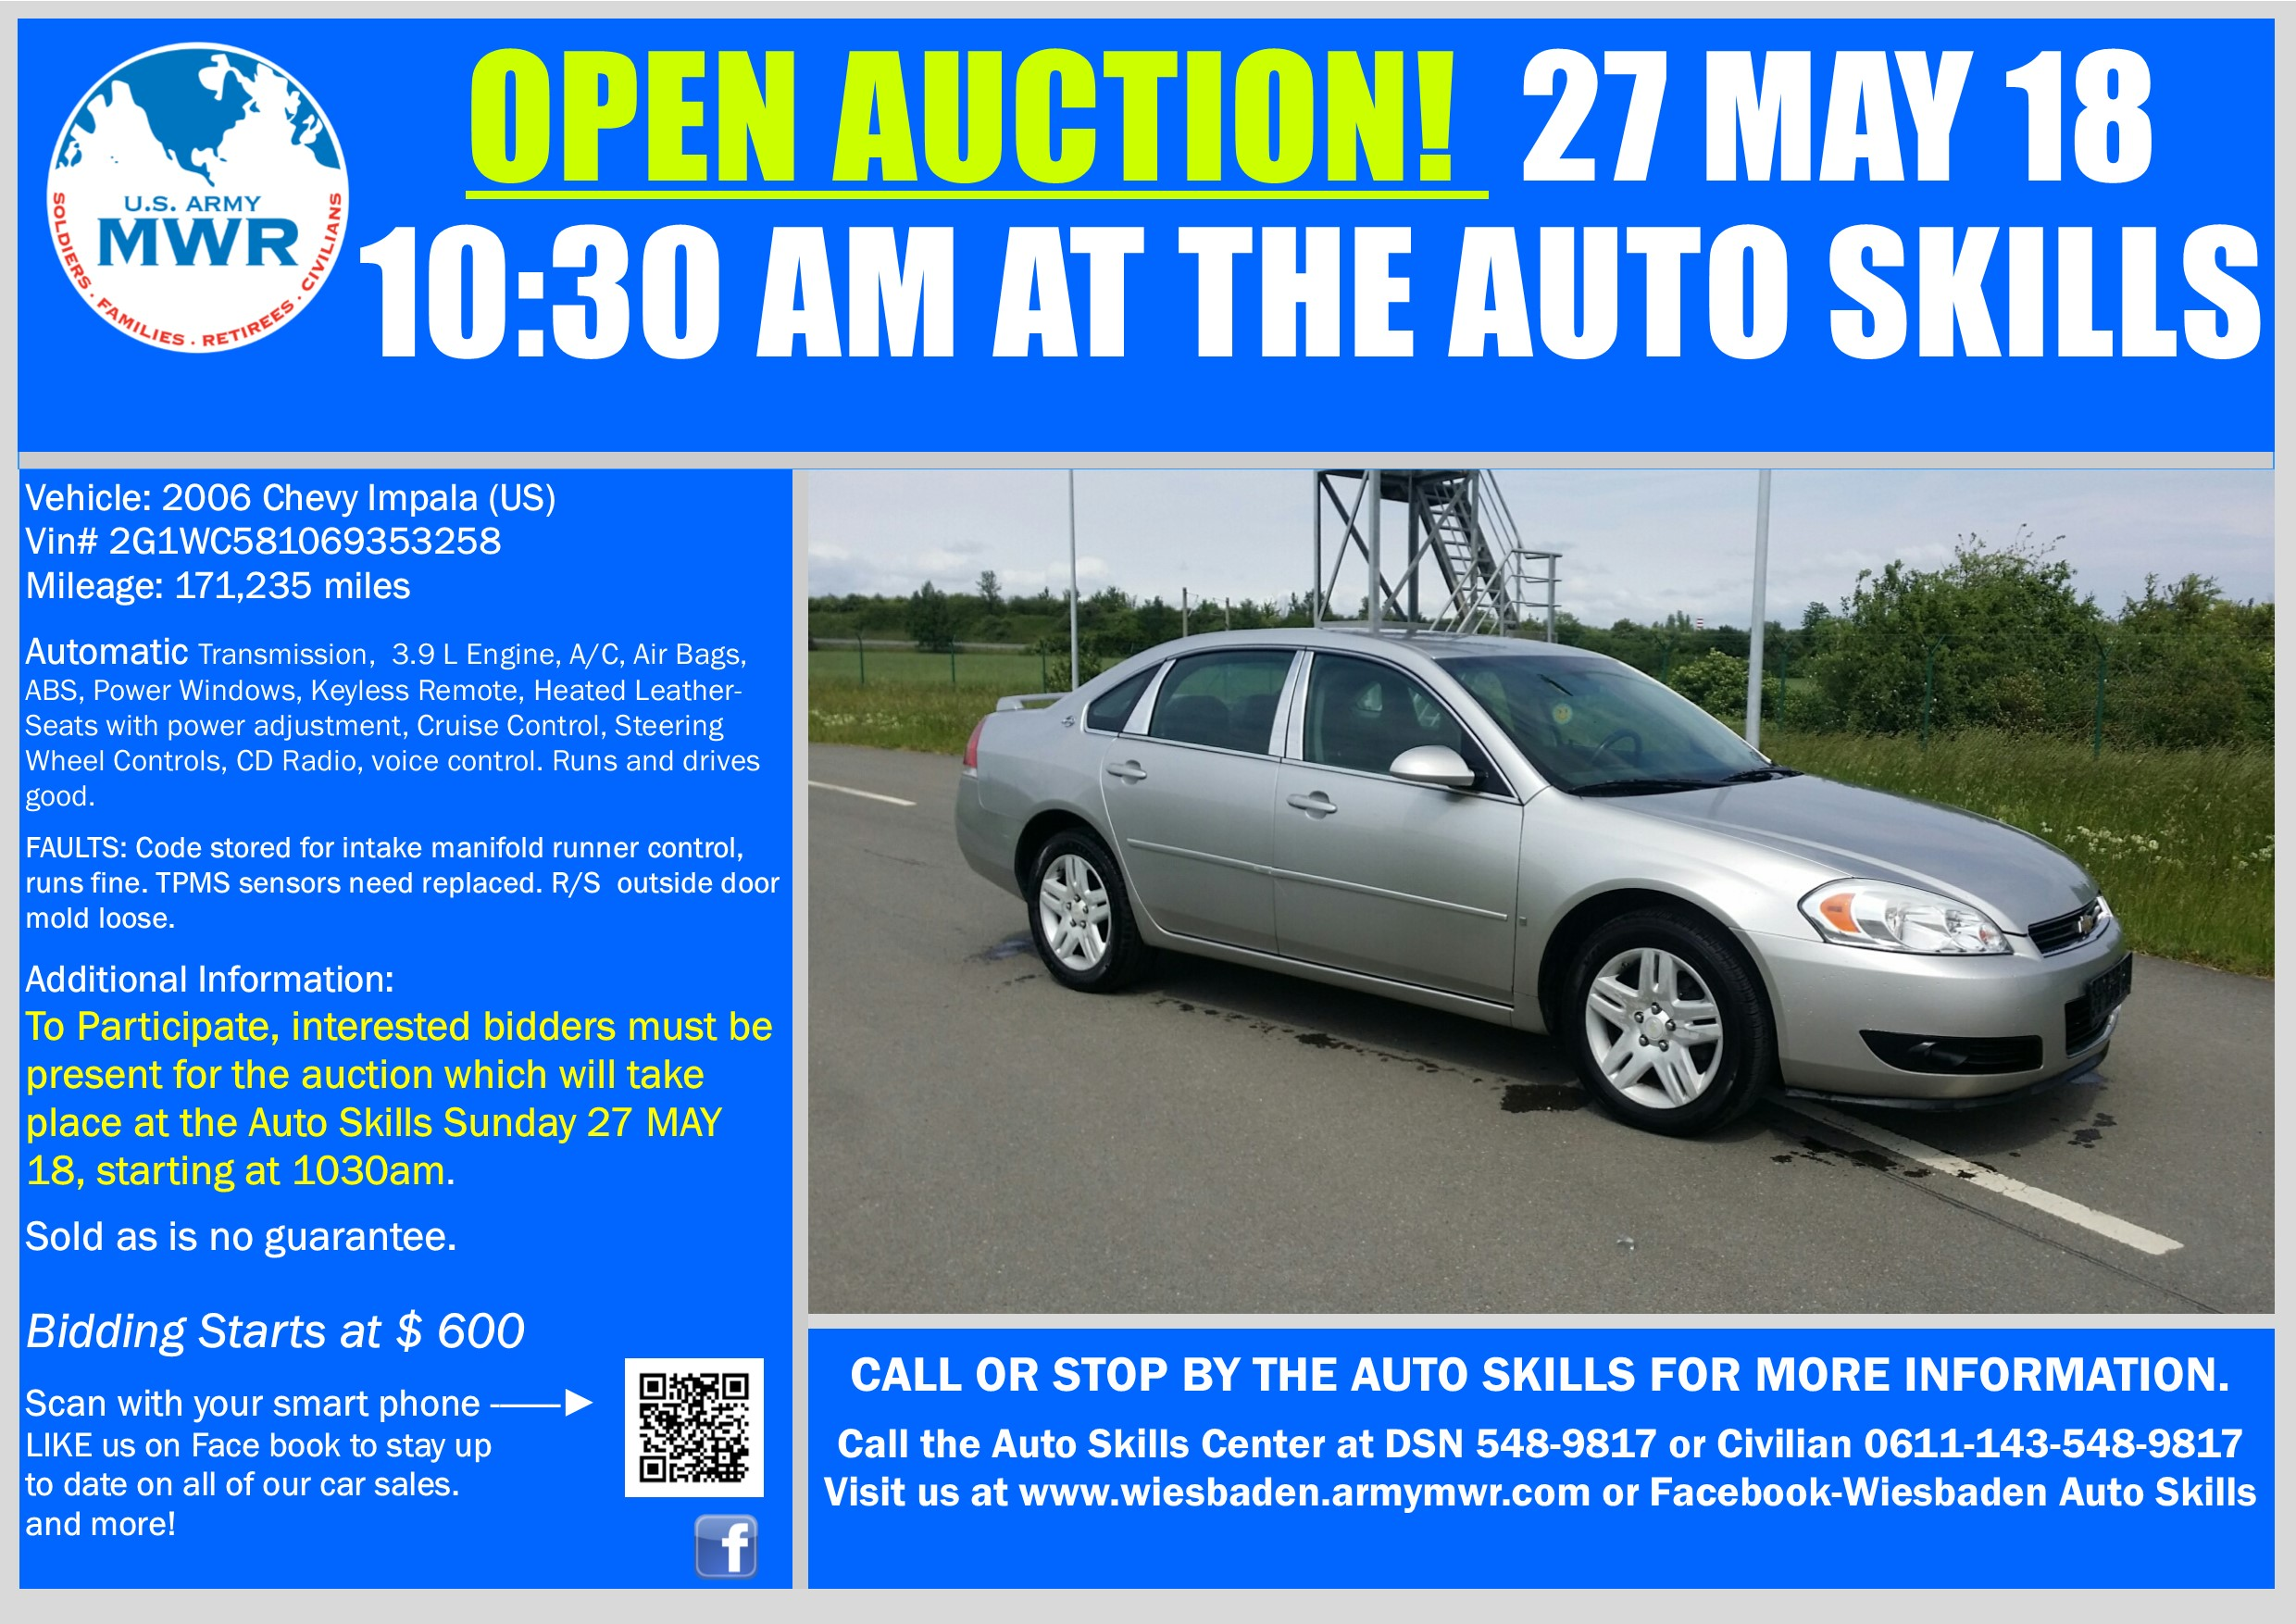 Sale_Chevy Impala 27 May 18 Open Auction.jpg